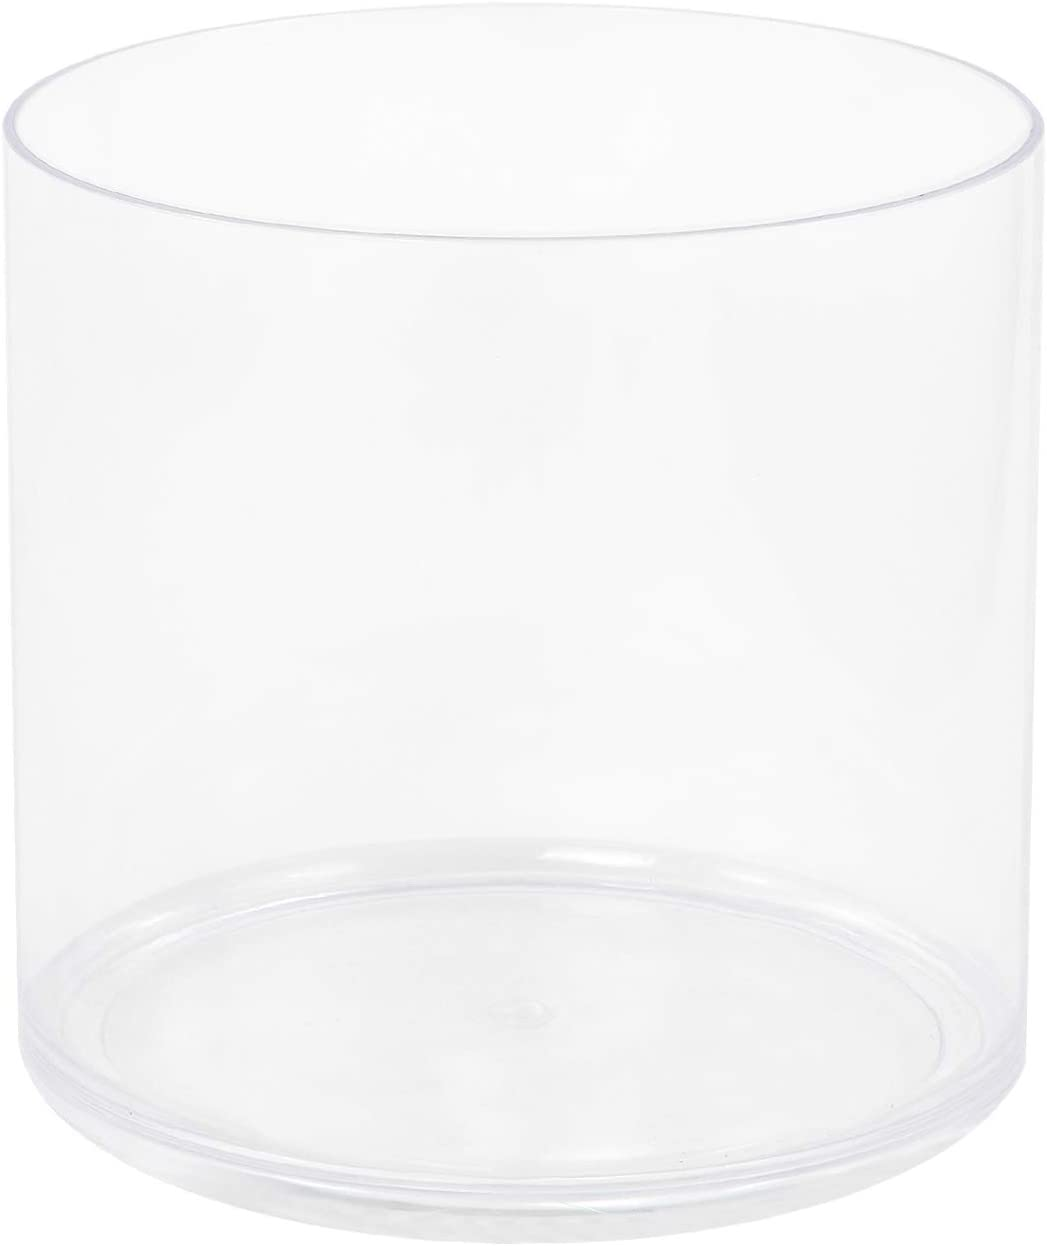 "Royal Imports Flower Acrylic Vase Decorative Centerpiece for Home or Wedding Break Resistant - 5"" Cylinder by 5"" Tall"